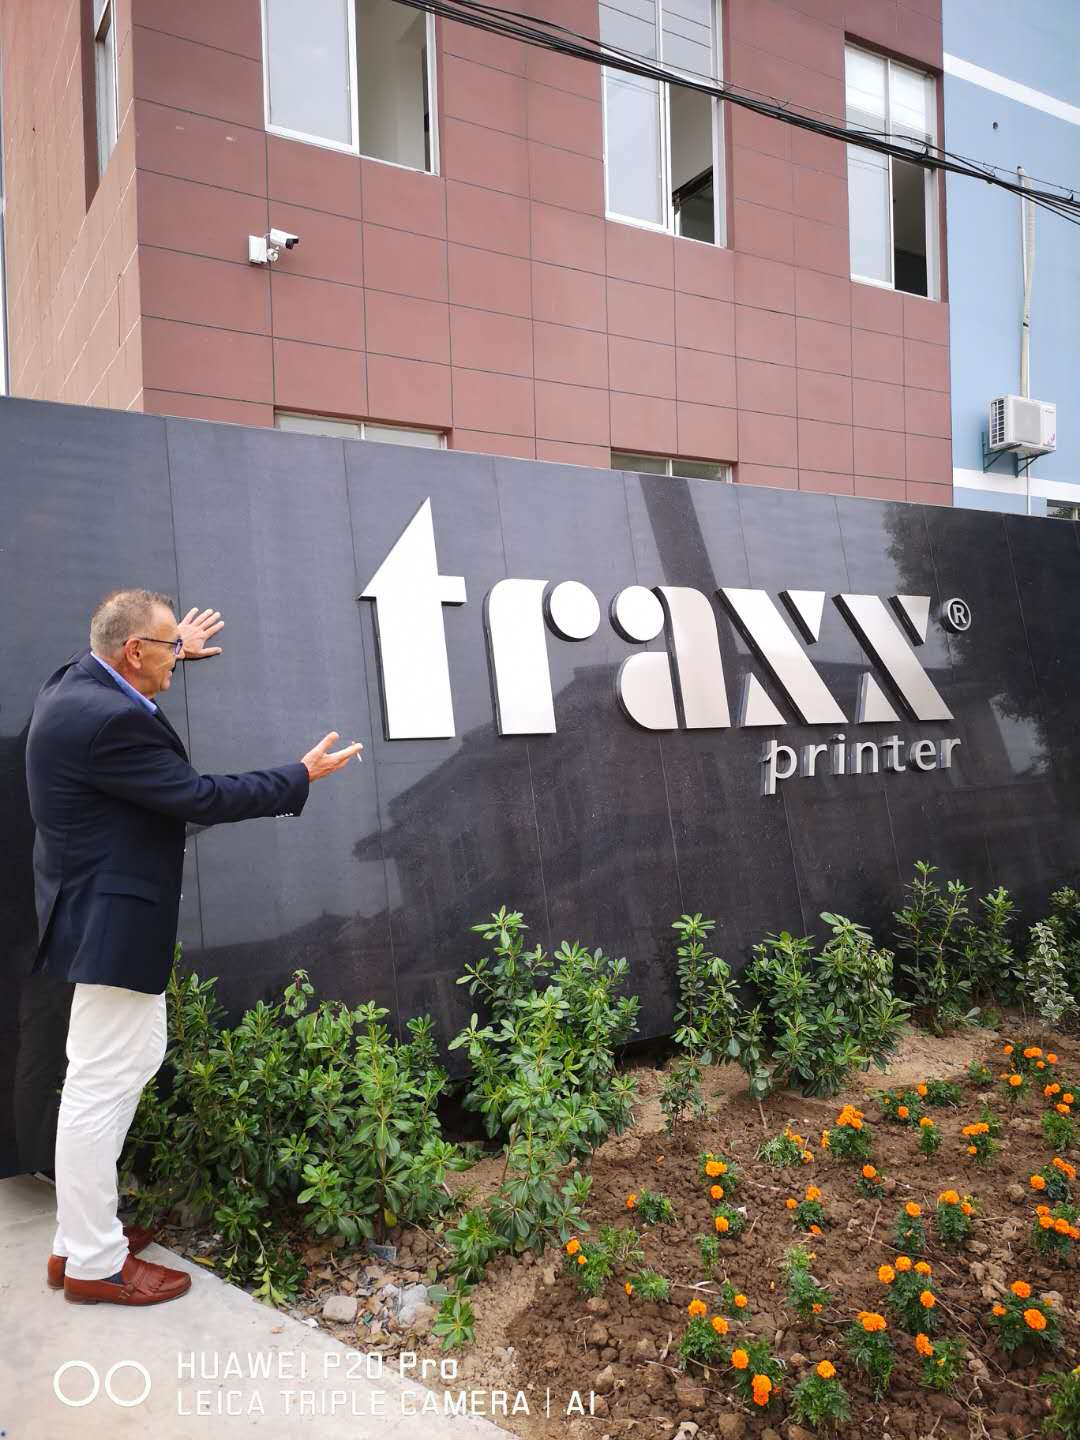 TRAXX is moving